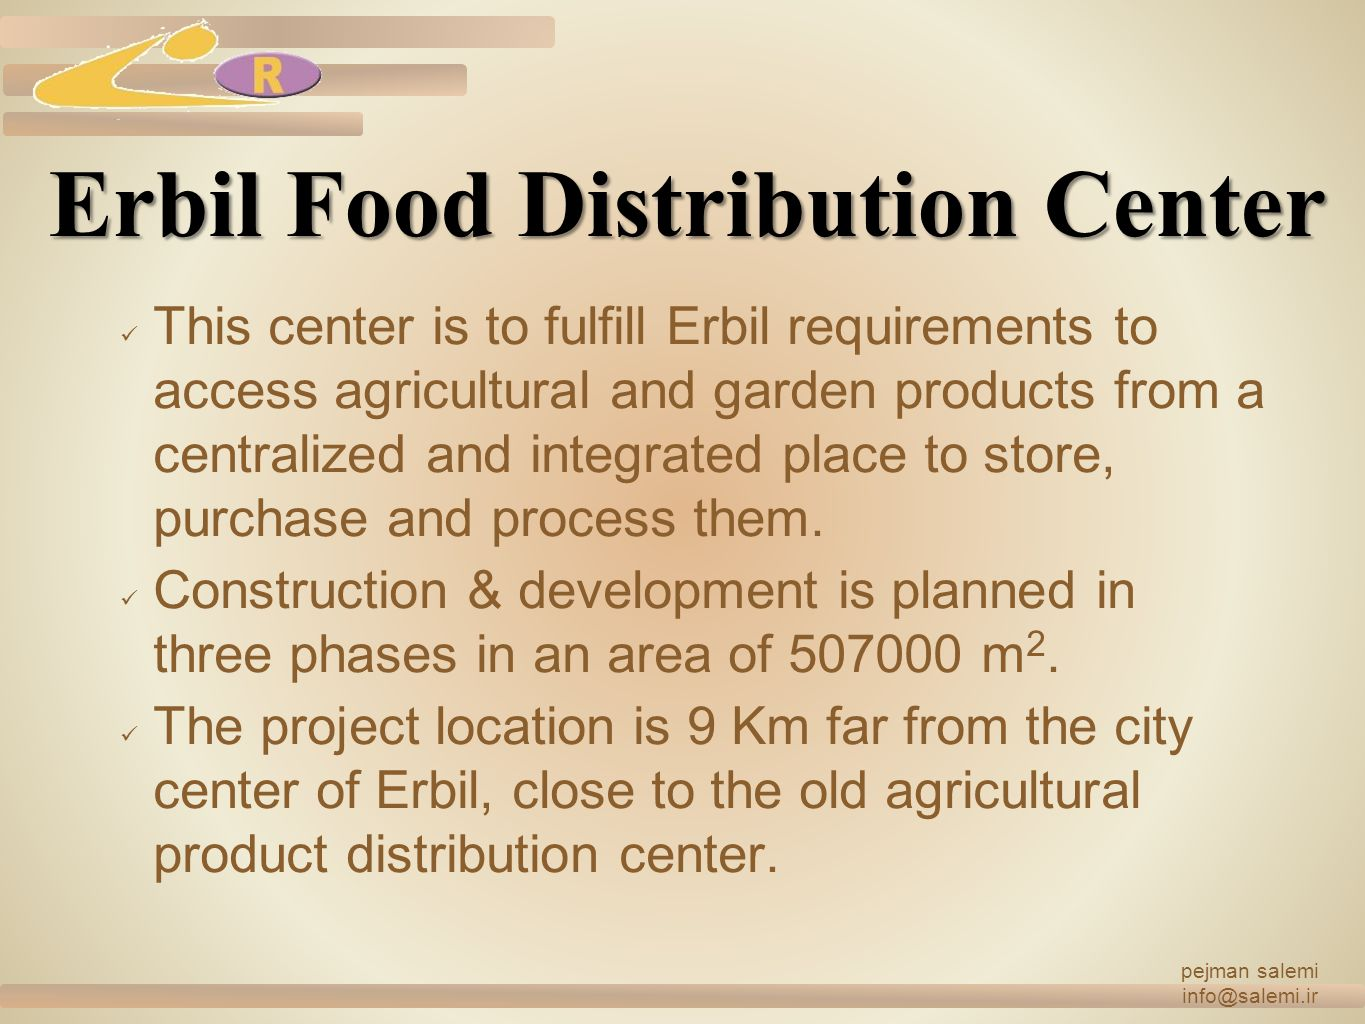 Erbil Food Distribution Center